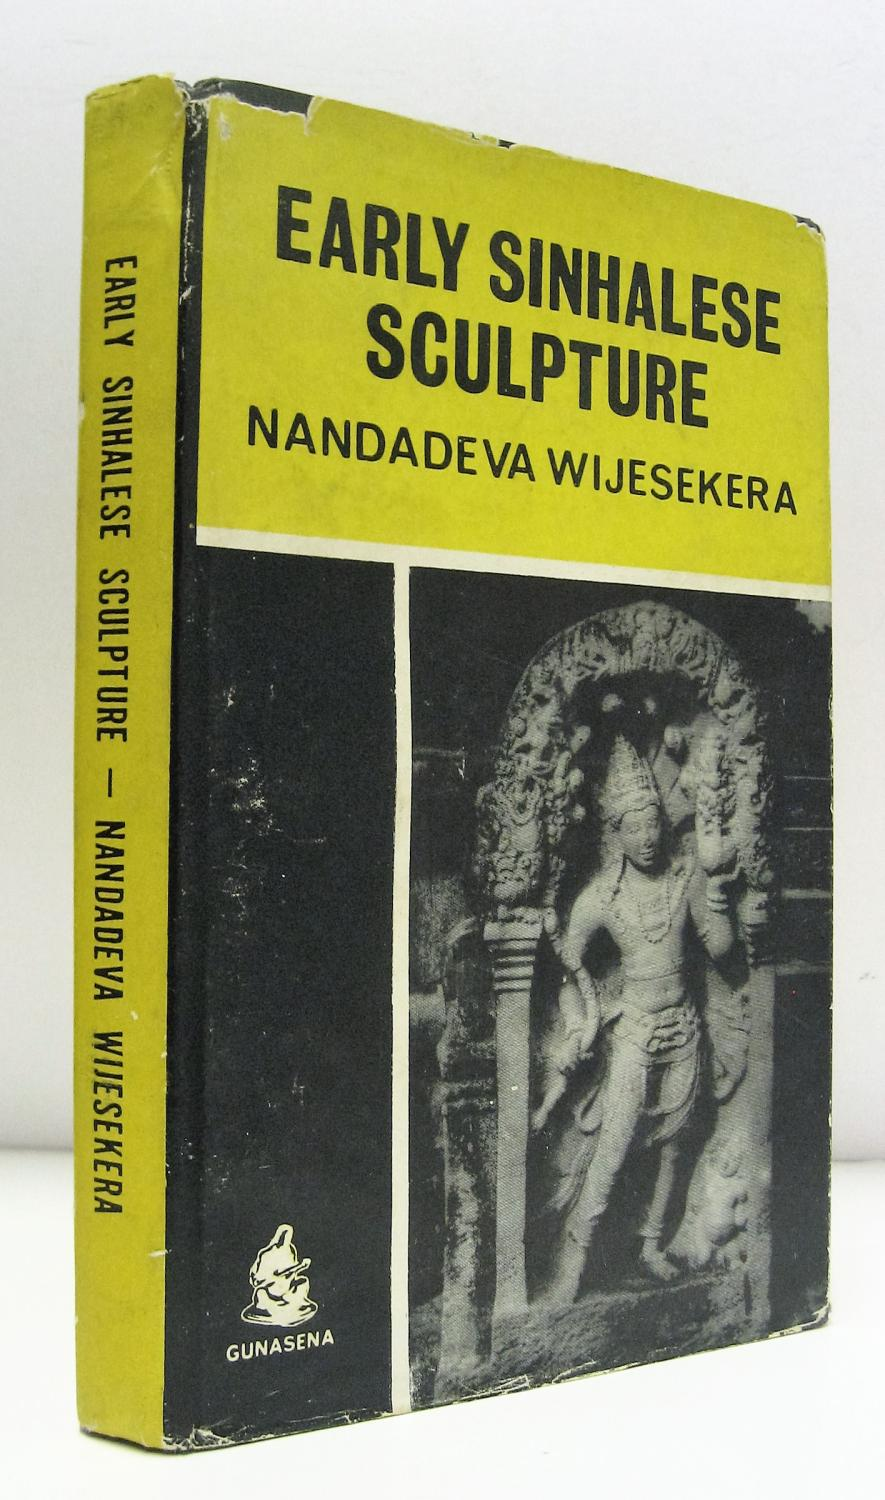 Early sinhalese sculpture by wijesekera nandadeva colombo md early sinhalese sculpture by wijesekera nandadeva colombo md gunasena 1962 john randall books of asia aba ilab gumiabroncs Choice Image